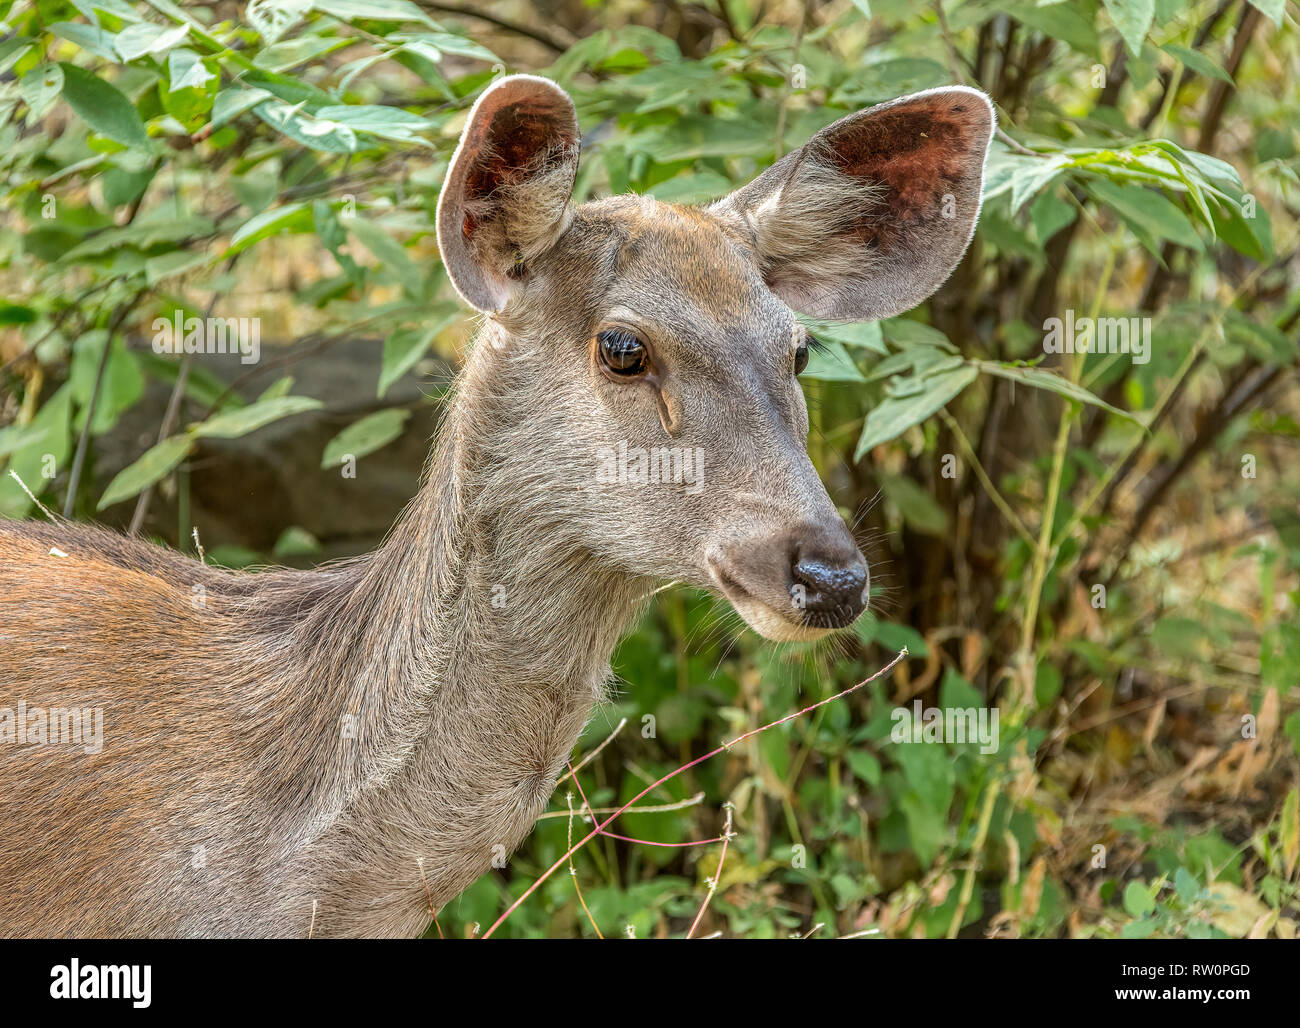 The sambar is a large deer native to the Indian subcontinent, southern China, and Southeast Asia that is listed as Vulnerable on the IUCN Red List sin - Stock Image